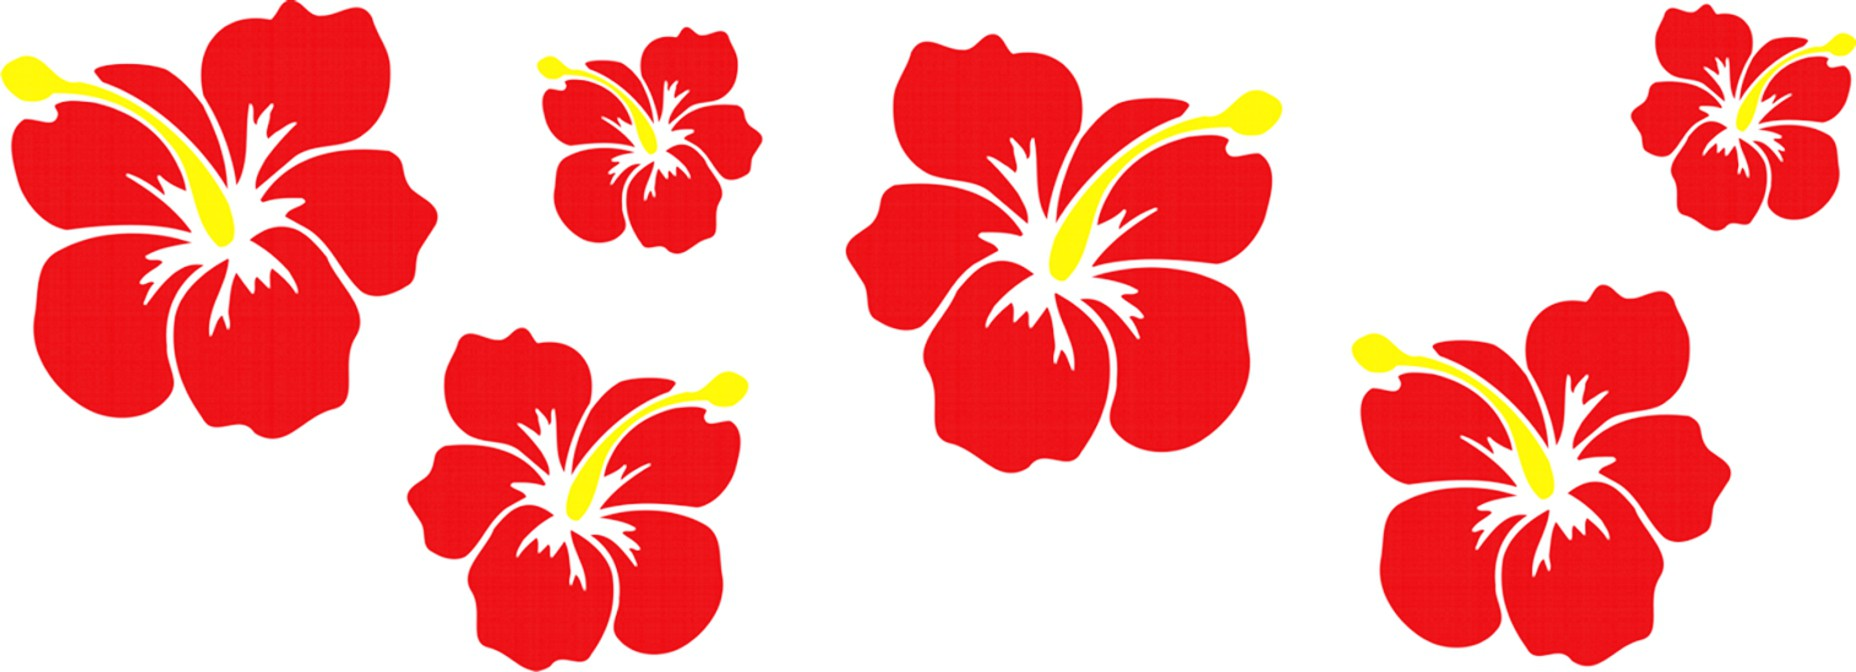 Sticker hibiscus blossoms set 490 x 160 mm car deco motives flower sticker hibiscus blossoms set 490 x 160 mm izmirmasajfo